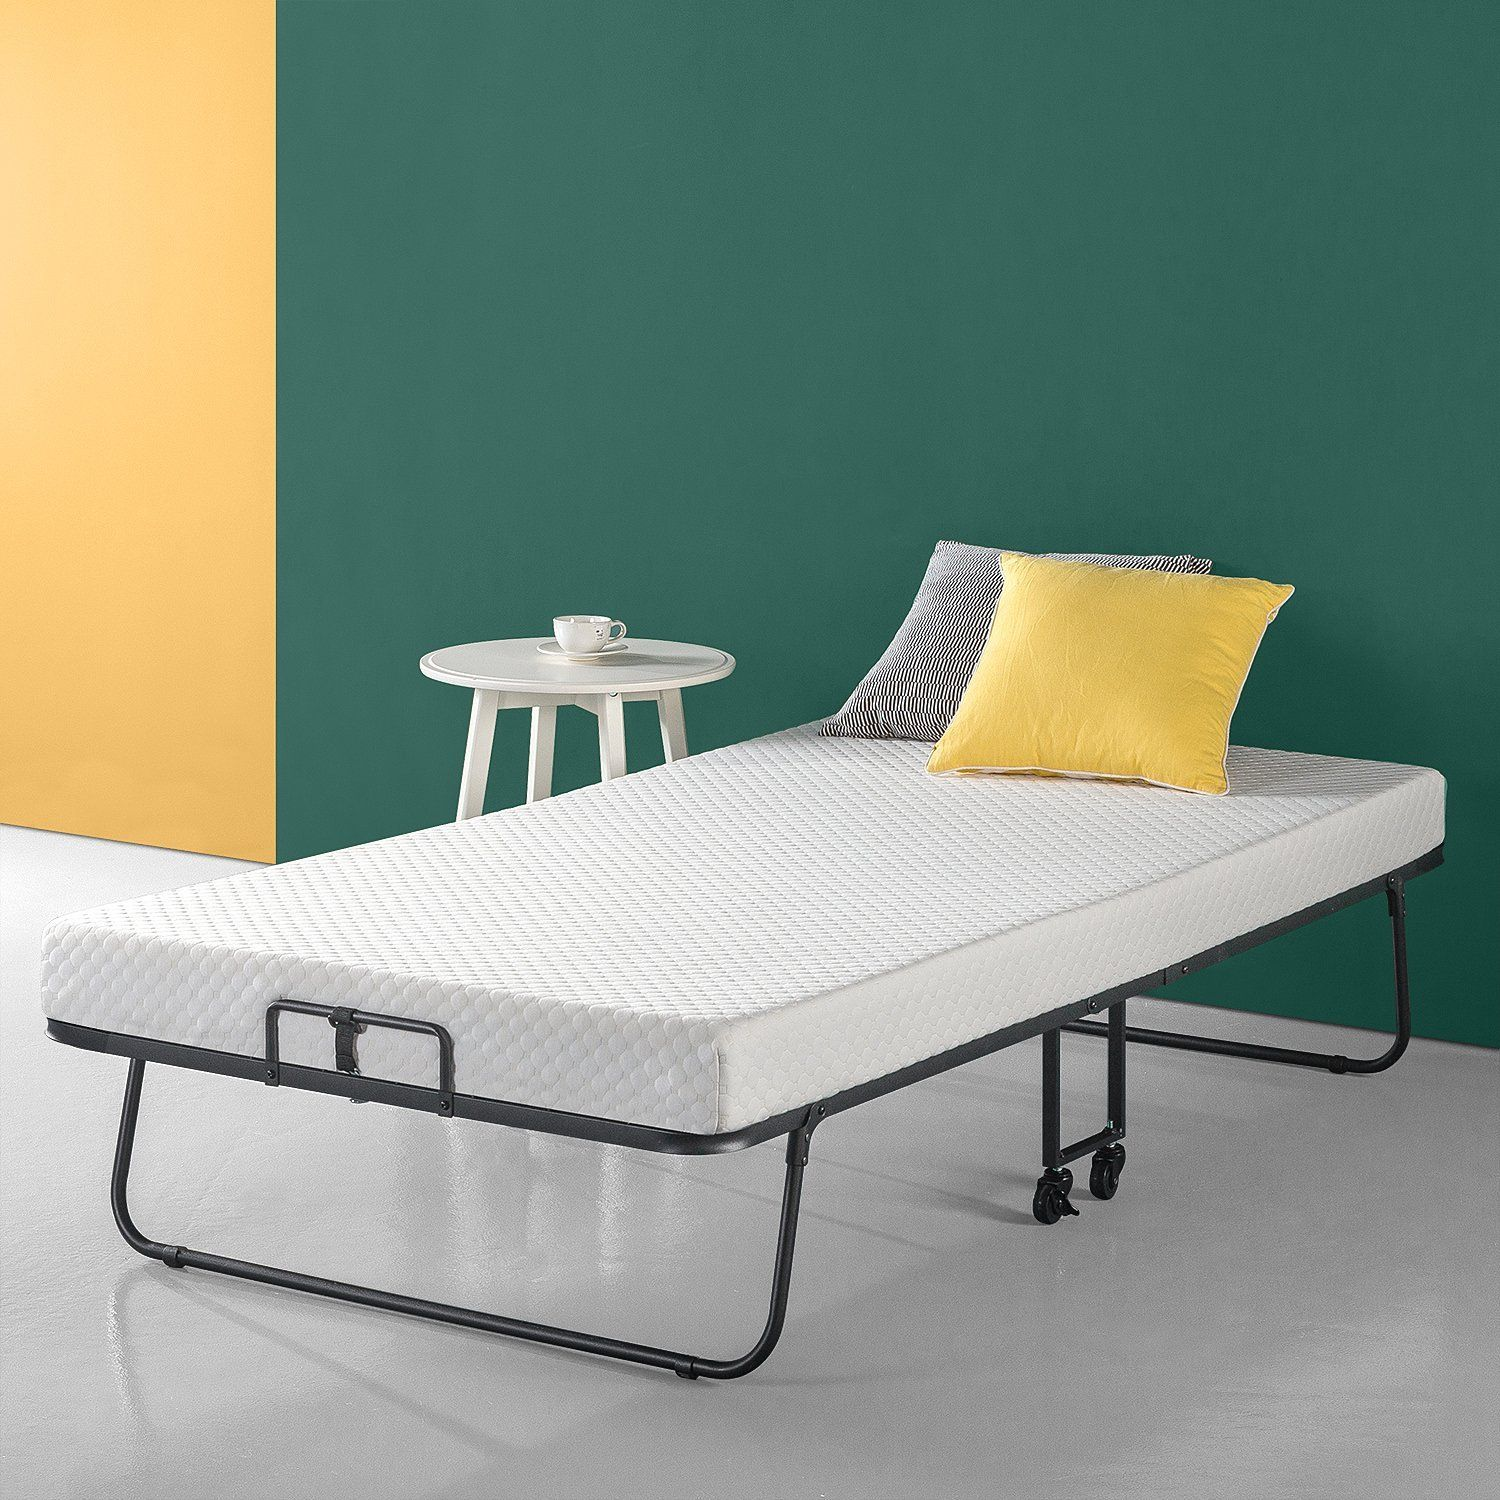 10 Best Rollaway Beds You Can Buy Online Most Comfortable Folding Guest Beds